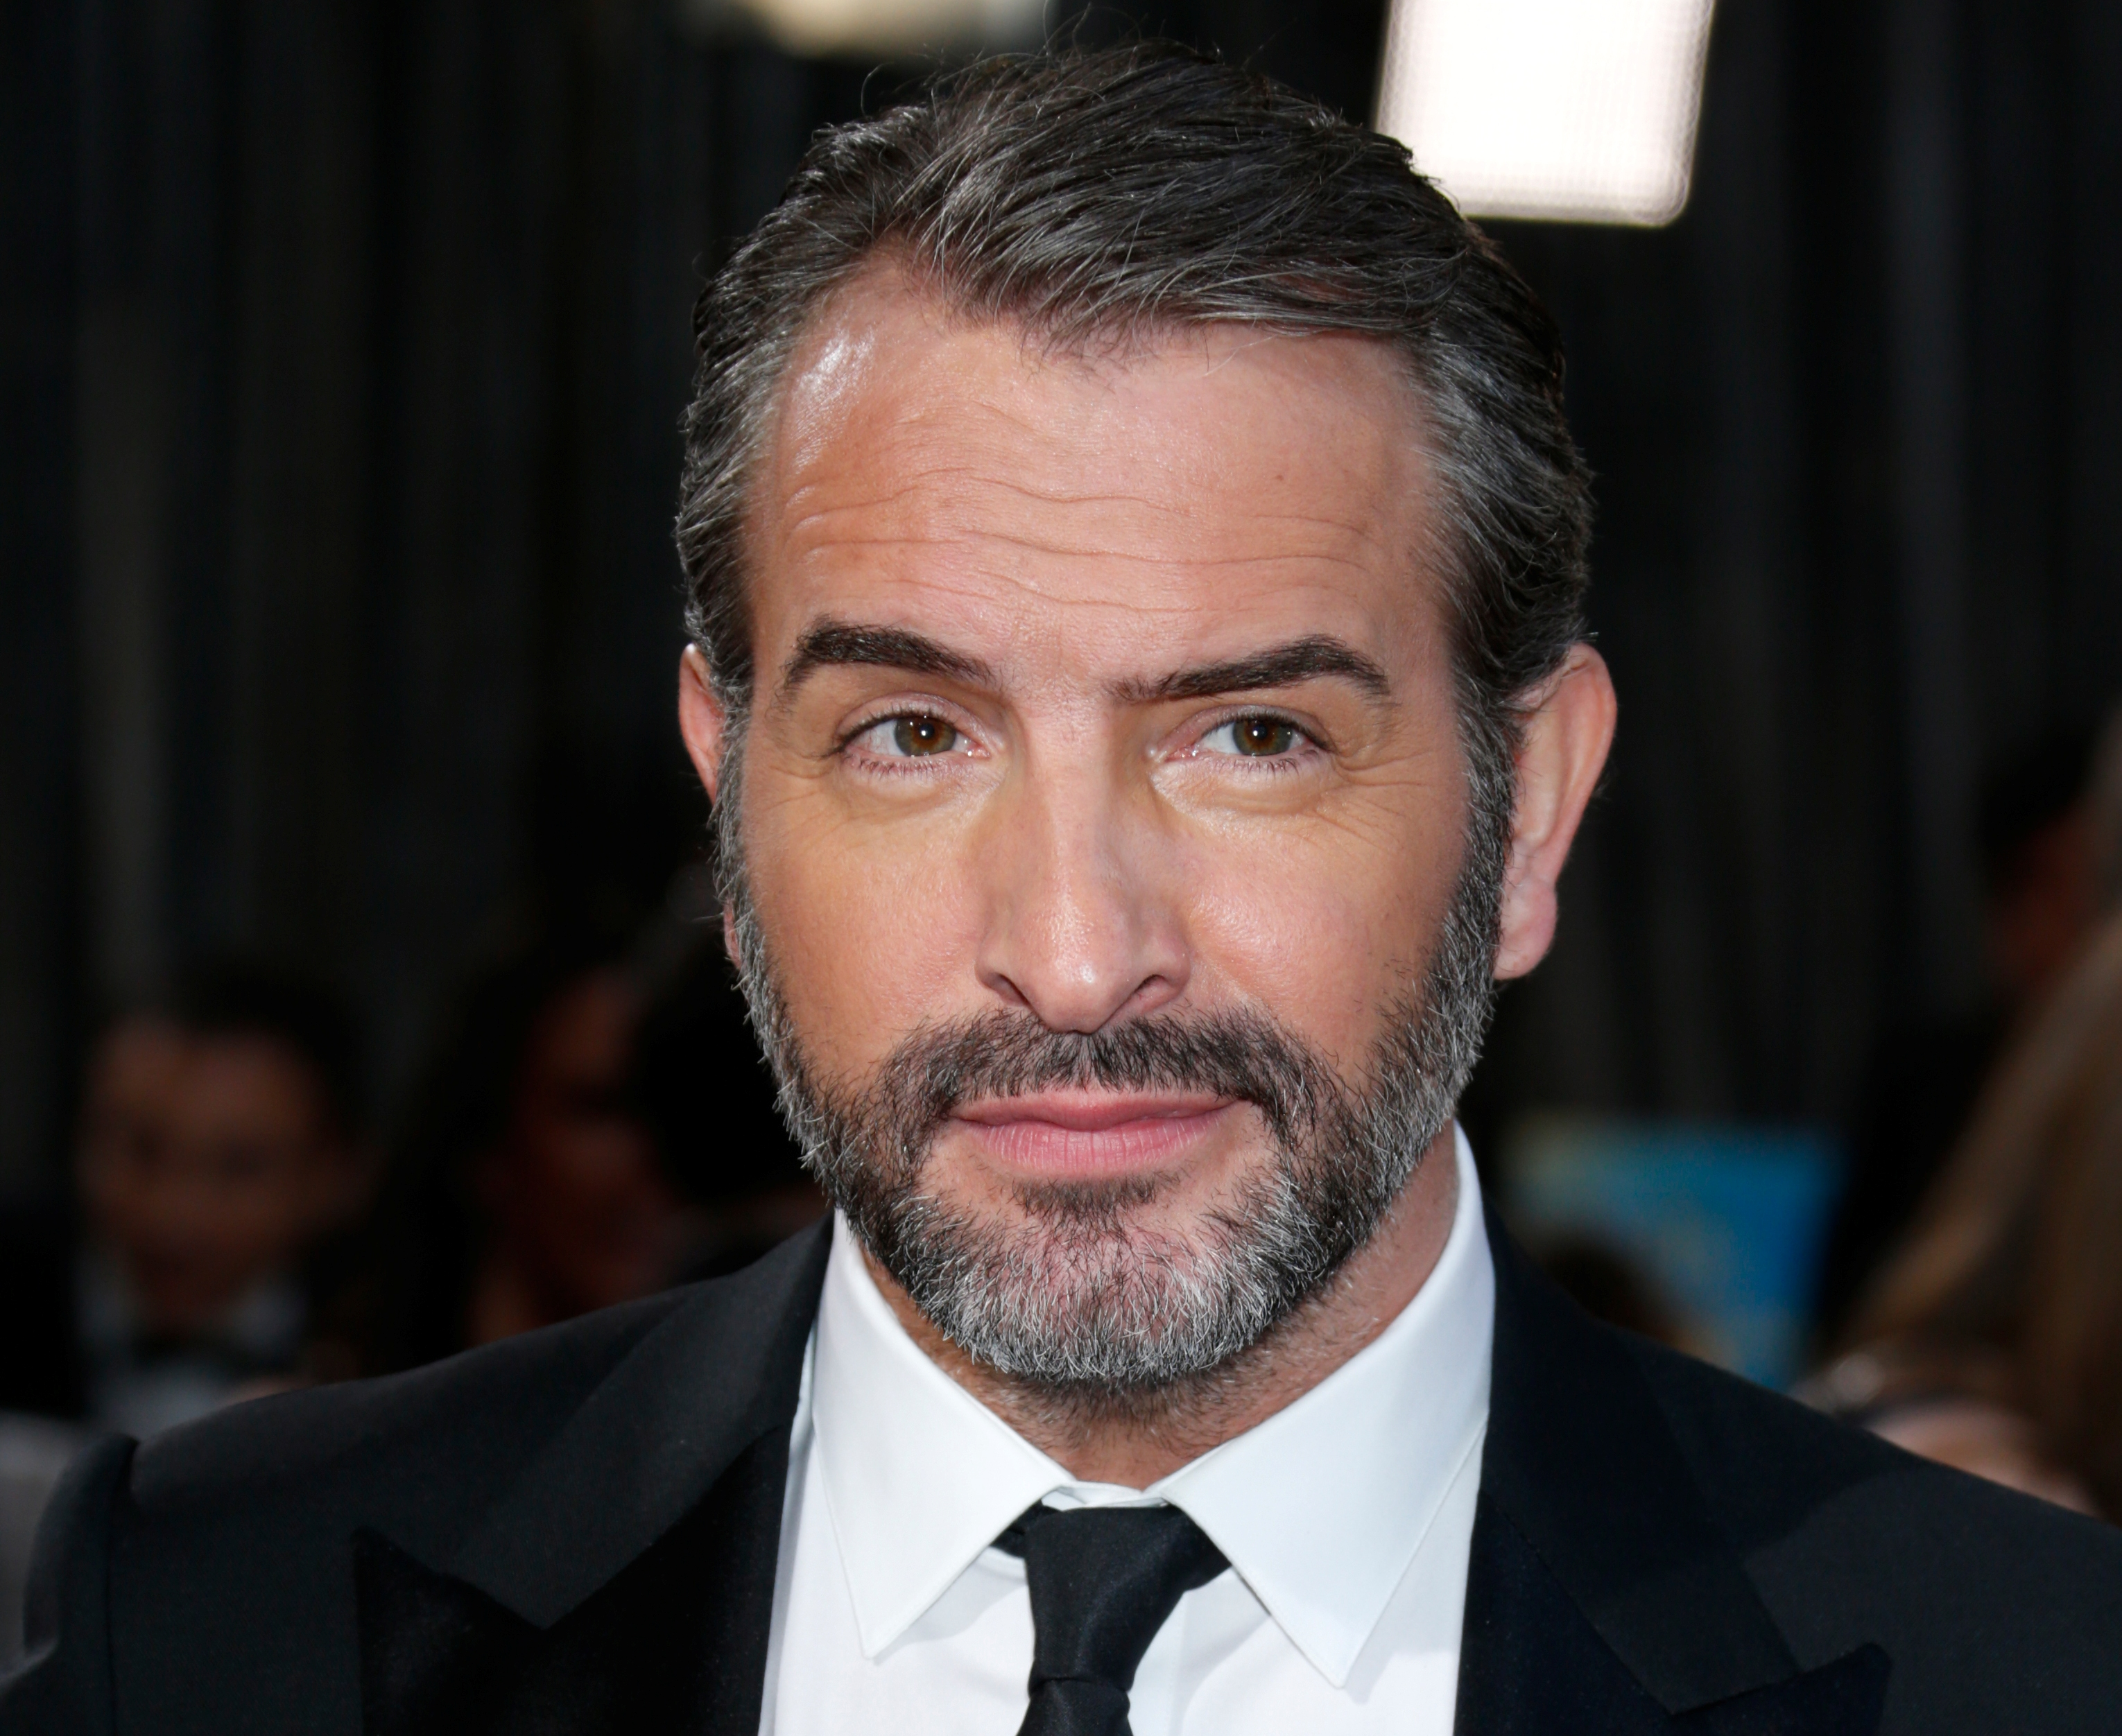 Jean dujardin parrain des illuminations de no l sur les for Jean dujardin photo